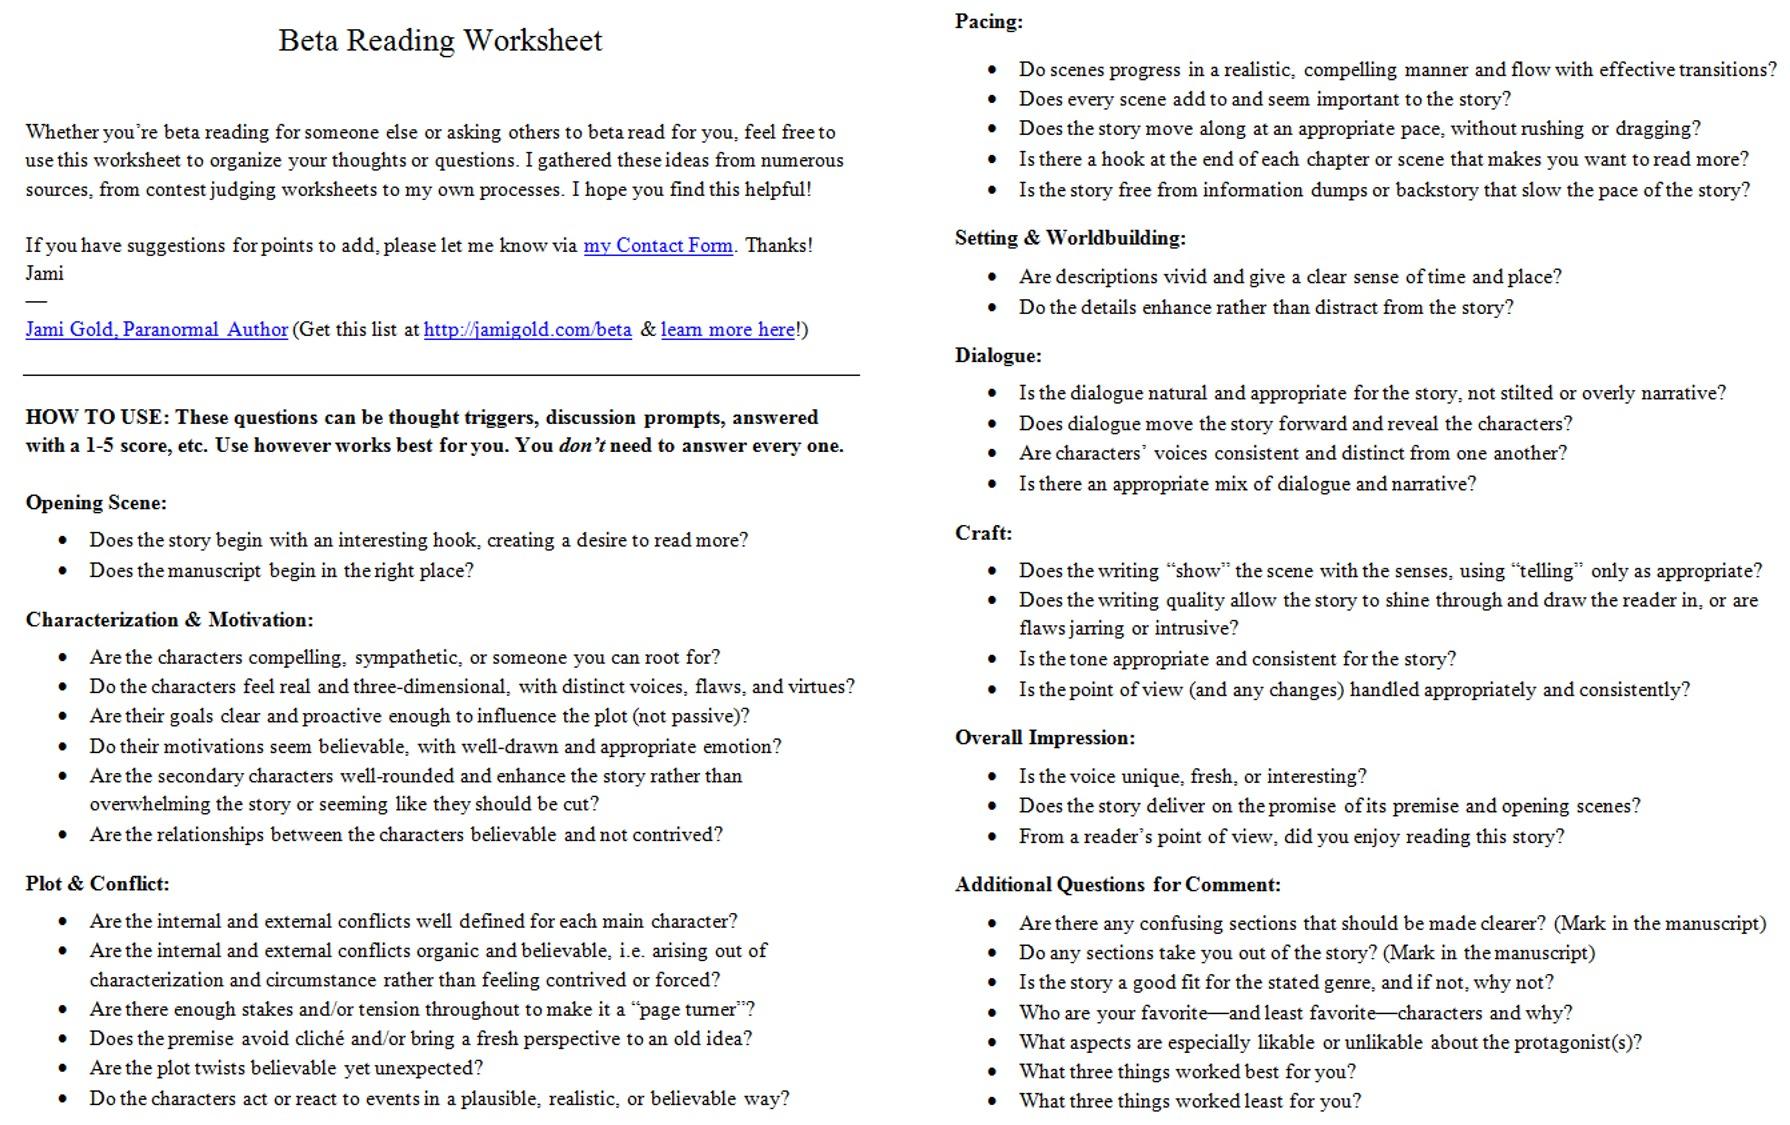 Weirdmailus  Stunning Worksheets For Writers  Jami Gold Paranormal Author With Handsome Screen Shot Of The Twopage Beta Reading Worksheet With Comely Derivative Worksheet With Answers Also Factoring Perfect Squares Worksheet In Addition Reconstruction Amendments Worksheet And Letter T Worksheets For Kindergarten As Well As World Map Worksheets Additionally Factoring Quadratic Polynomials Worksheet From Jamigoldcom With Weirdmailus  Handsome Worksheets For Writers  Jami Gold Paranormal Author With Comely Screen Shot Of The Twopage Beta Reading Worksheet And Stunning Derivative Worksheet With Answers Also Factoring Perfect Squares Worksheet In Addition Reconstruction Amendments Worksheet From Jamigoldcom